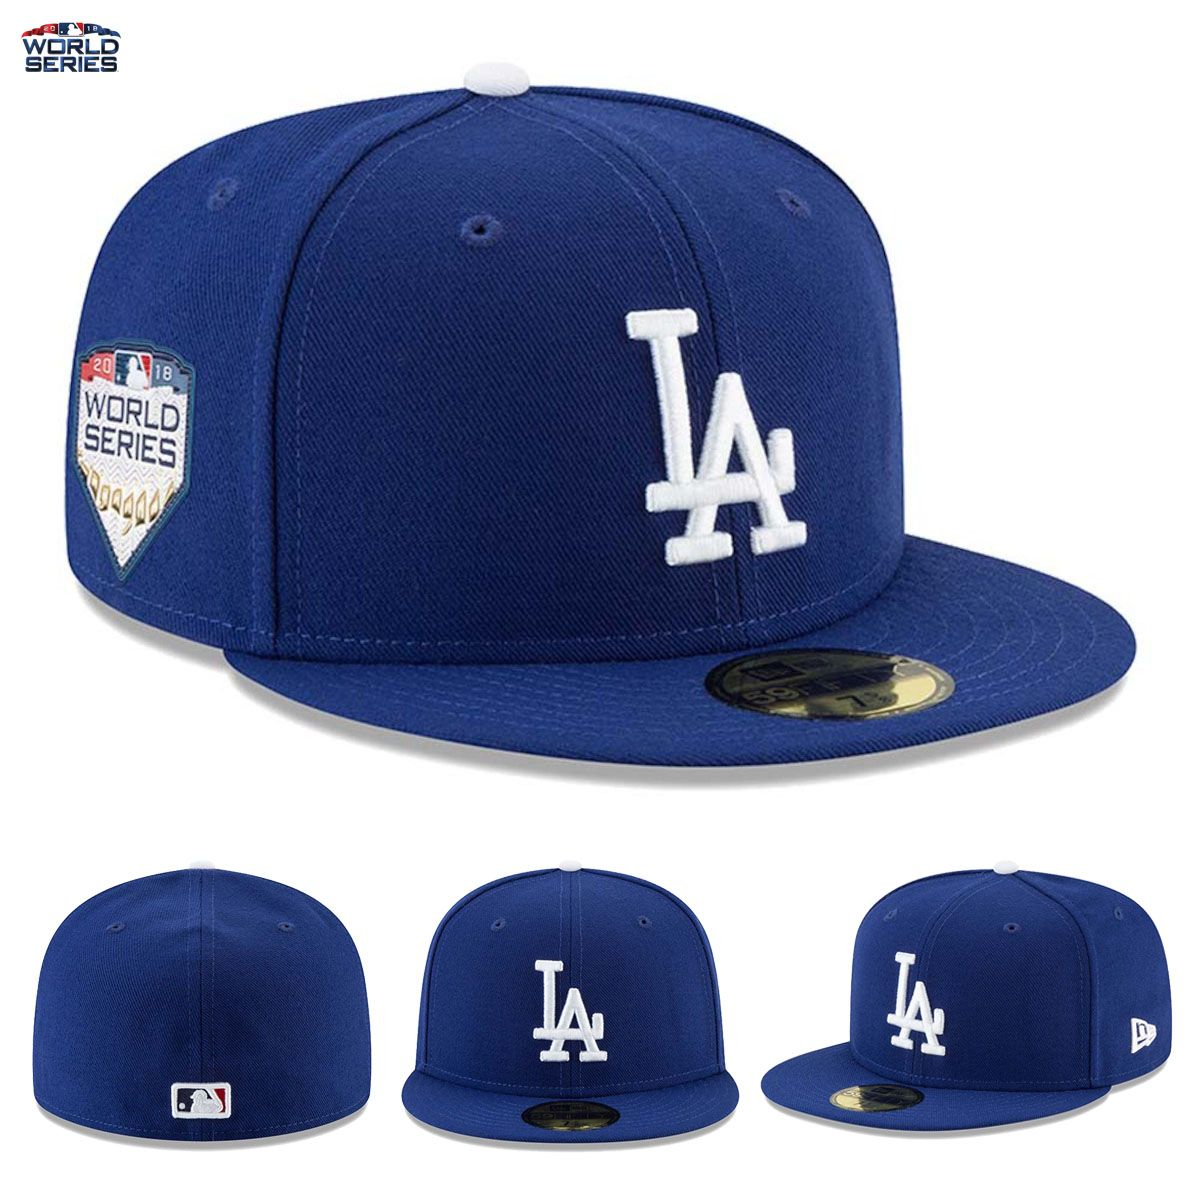 NEW Los Angeles Dodgers New Era 59FIFTY Fitted Hat Cap 2018 World ... 8a97ee28ff2e